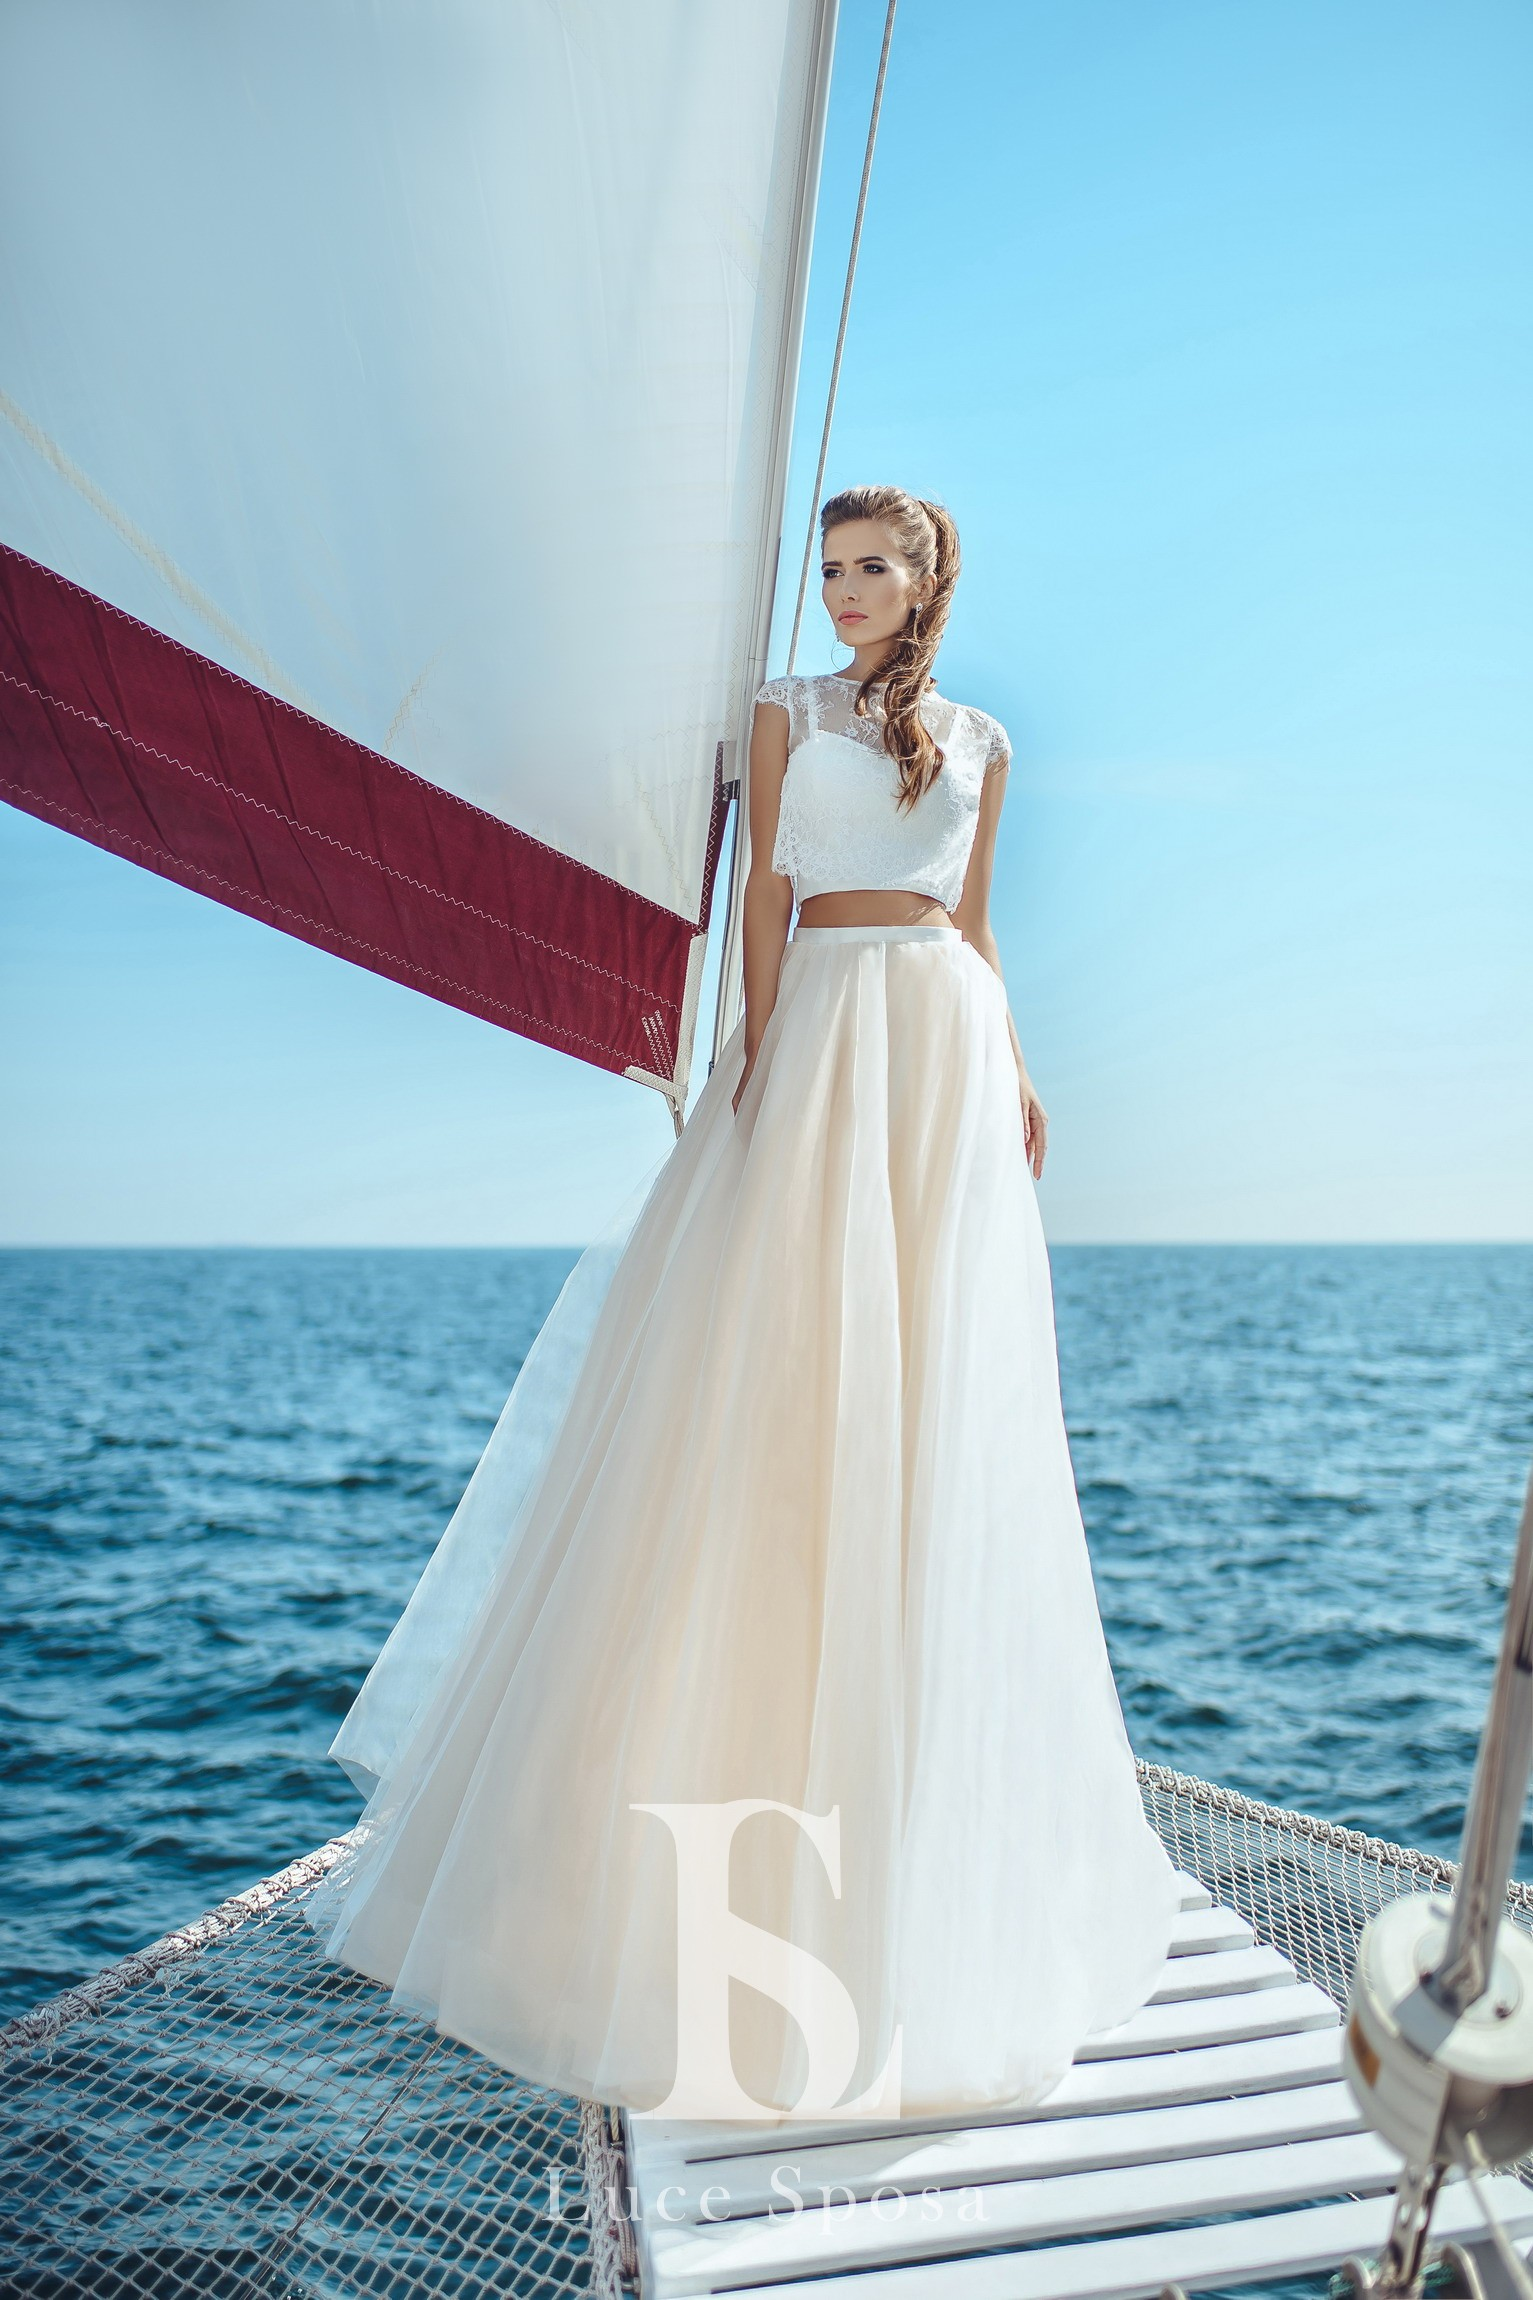 https://lucesposa.com/images/stories/virtuemart/product/ABB_4401.jpg